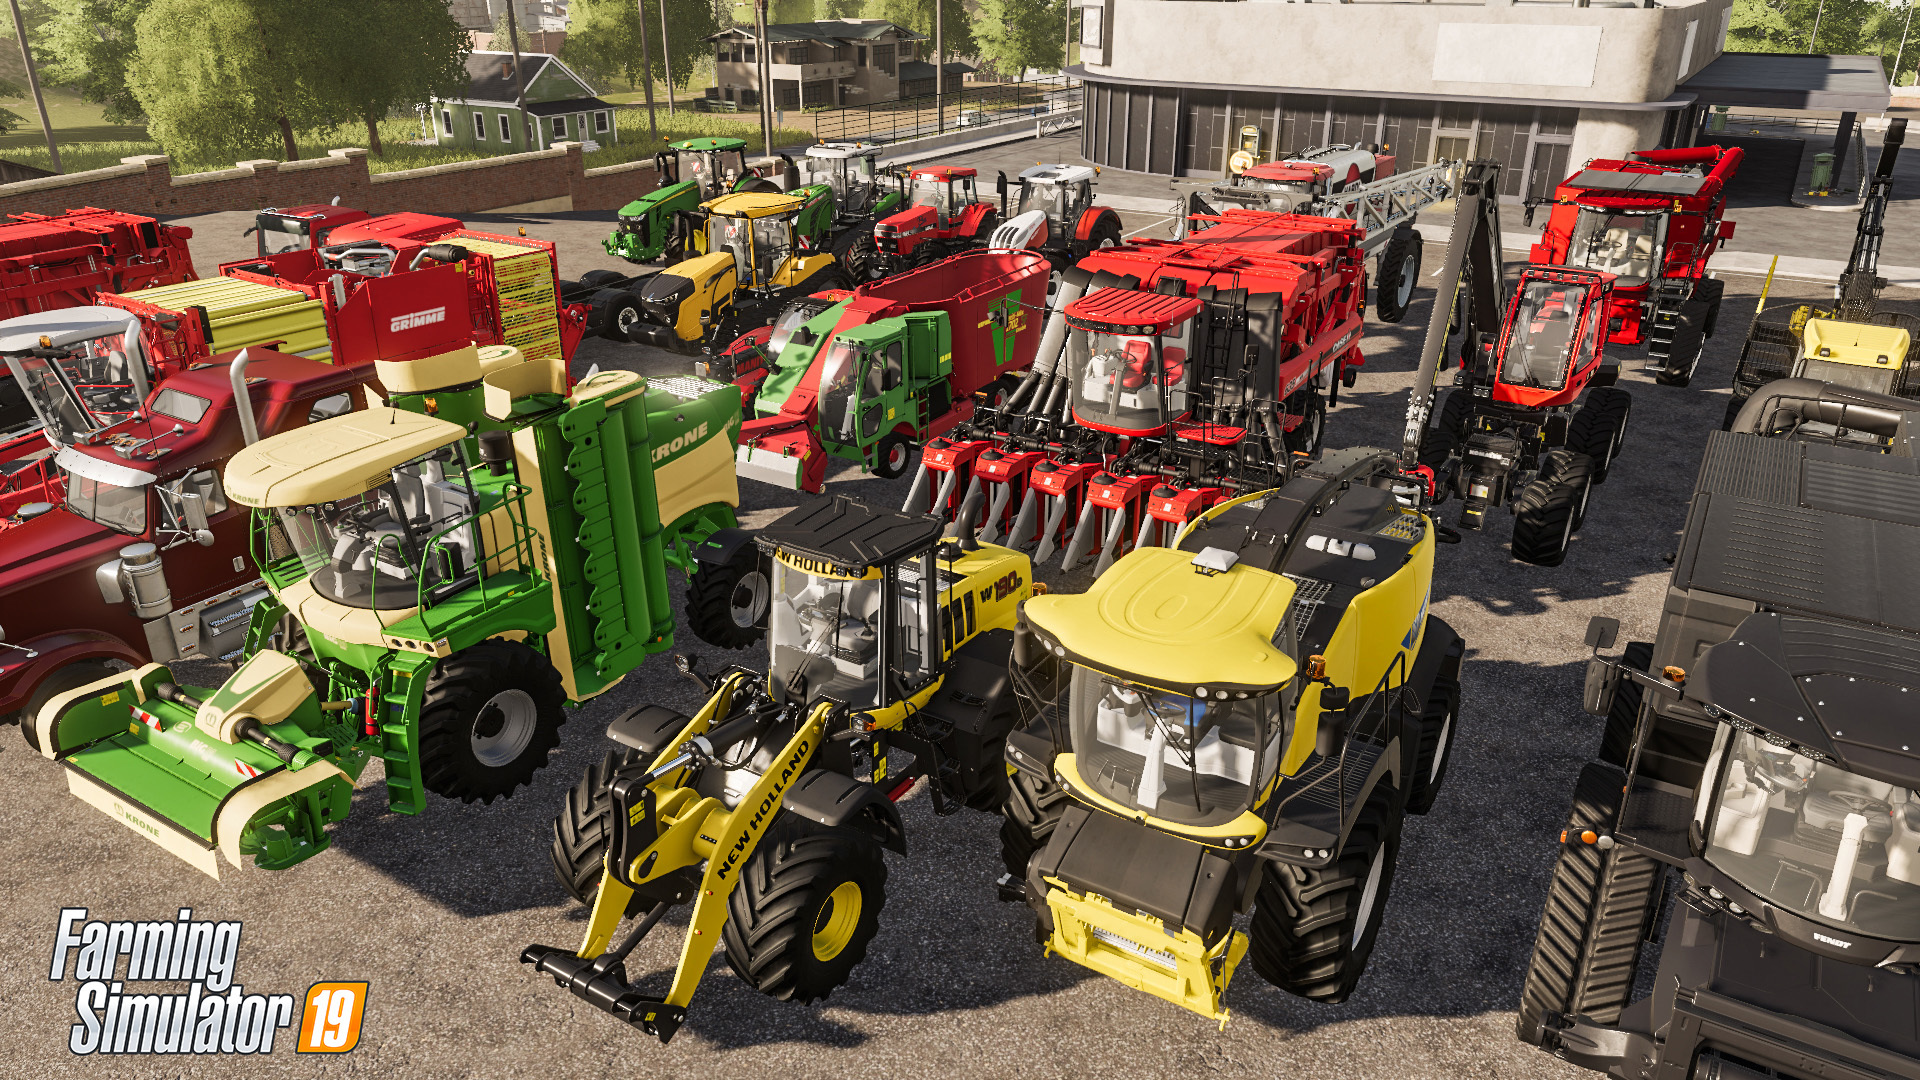 Farming Simulator 17 On Steam Download The Completepackage Including Schematicfirmware Software Begin With No Property But Plenty Of Money To Build Farm Your Dreams Or Go For A More Hardcore Playstyle Small Starting Limited